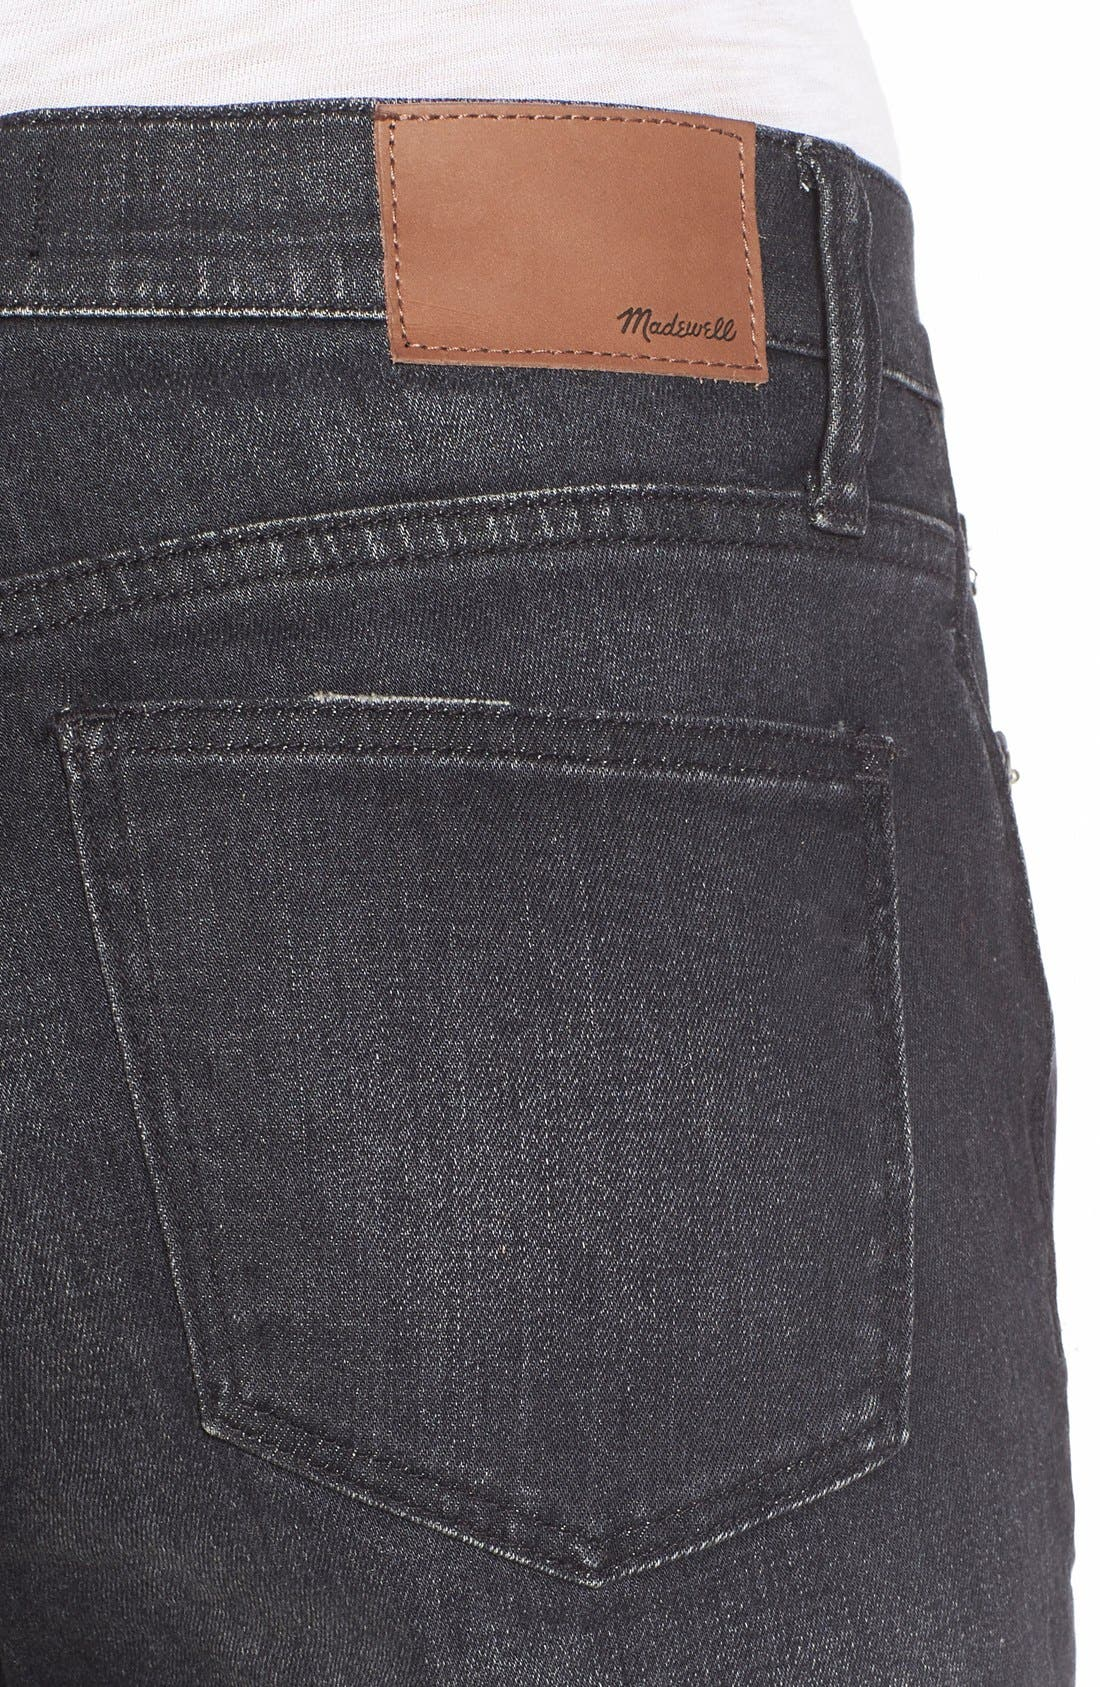 'High Riser' Skinny Skinny Jeans,                             Alternate thumbnail 5, color,                             Kincaid Wash